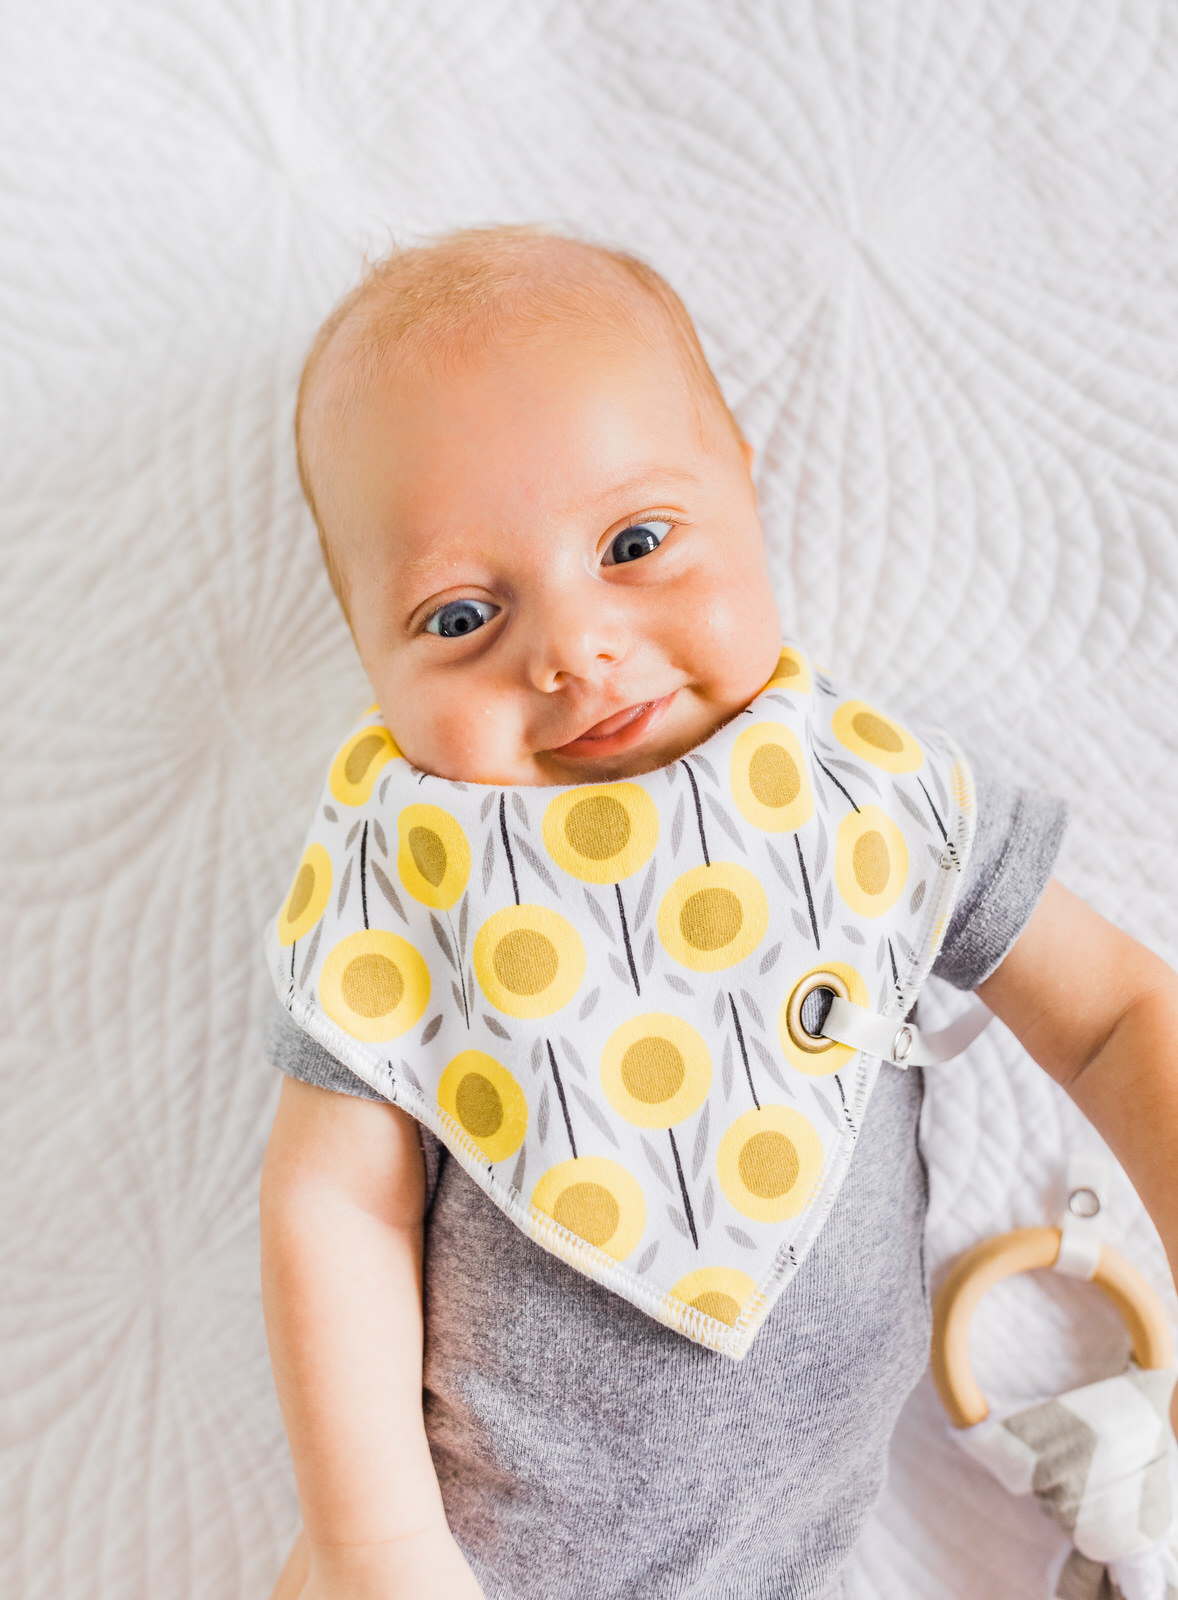 kids-clothes-small-business-baby-newborn-collaboration-7605.jpg